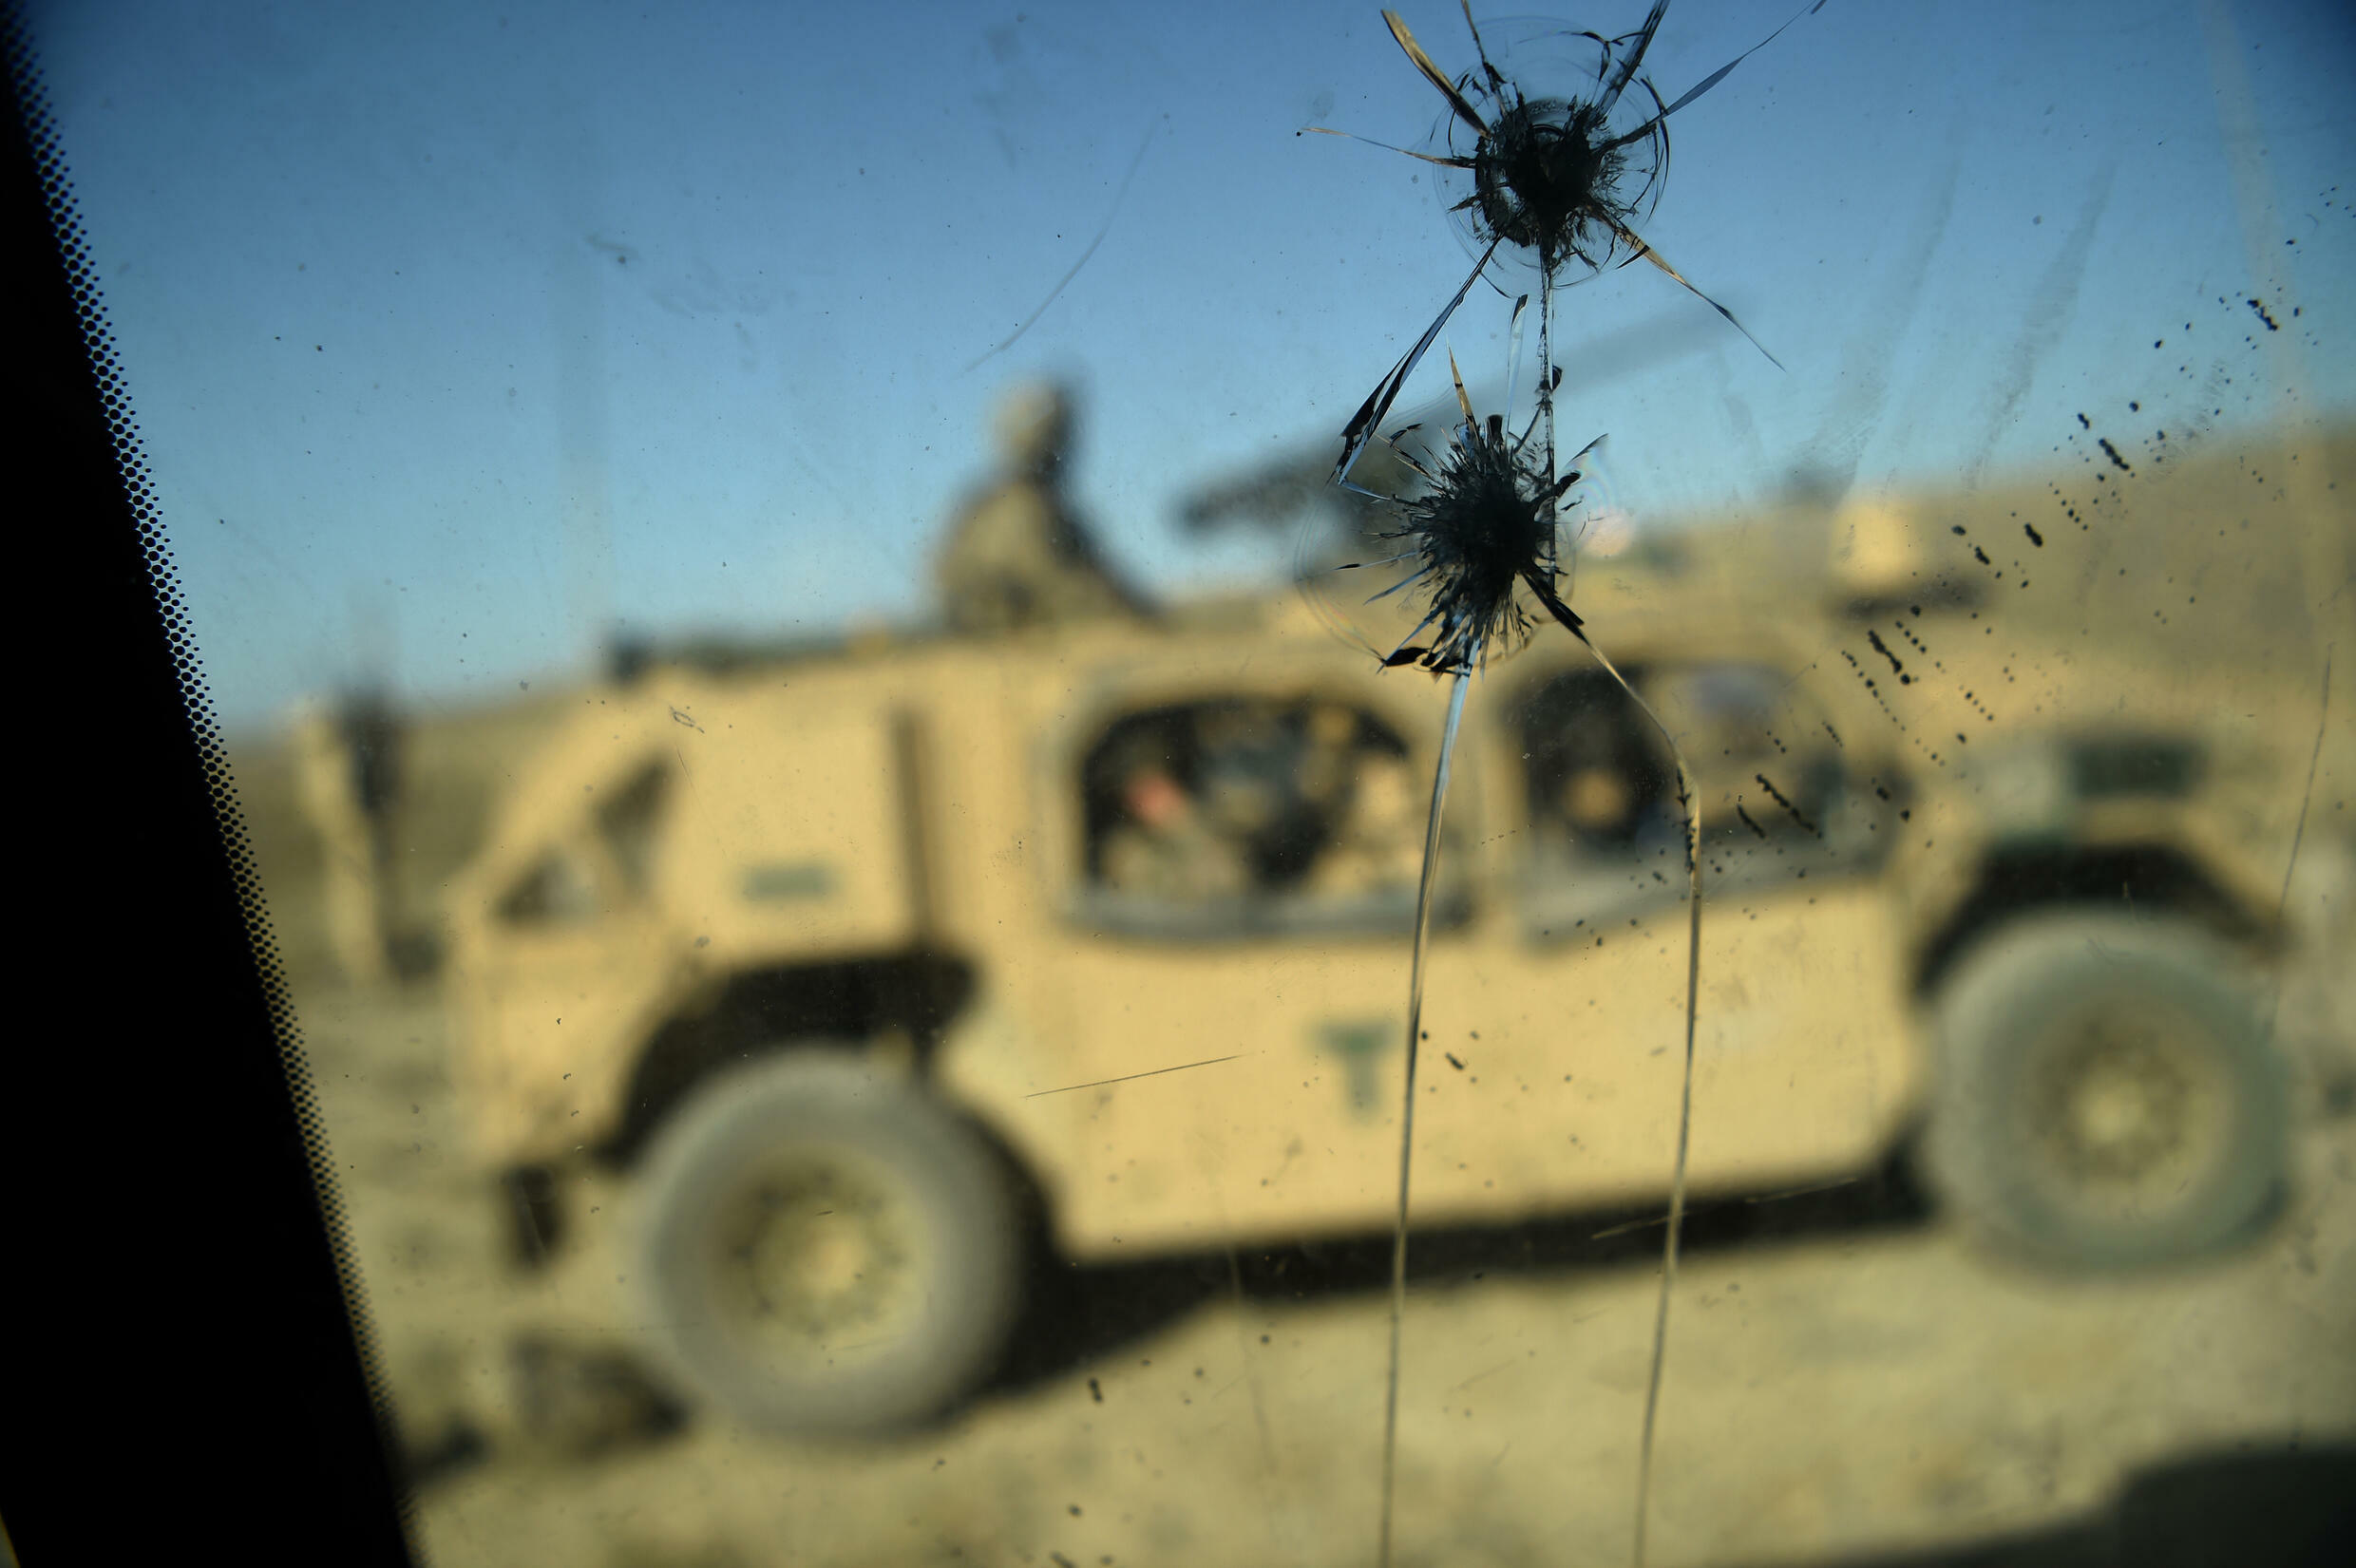 NATO members have indicated they are willing to remain in Afghanistan if the US decides to stay